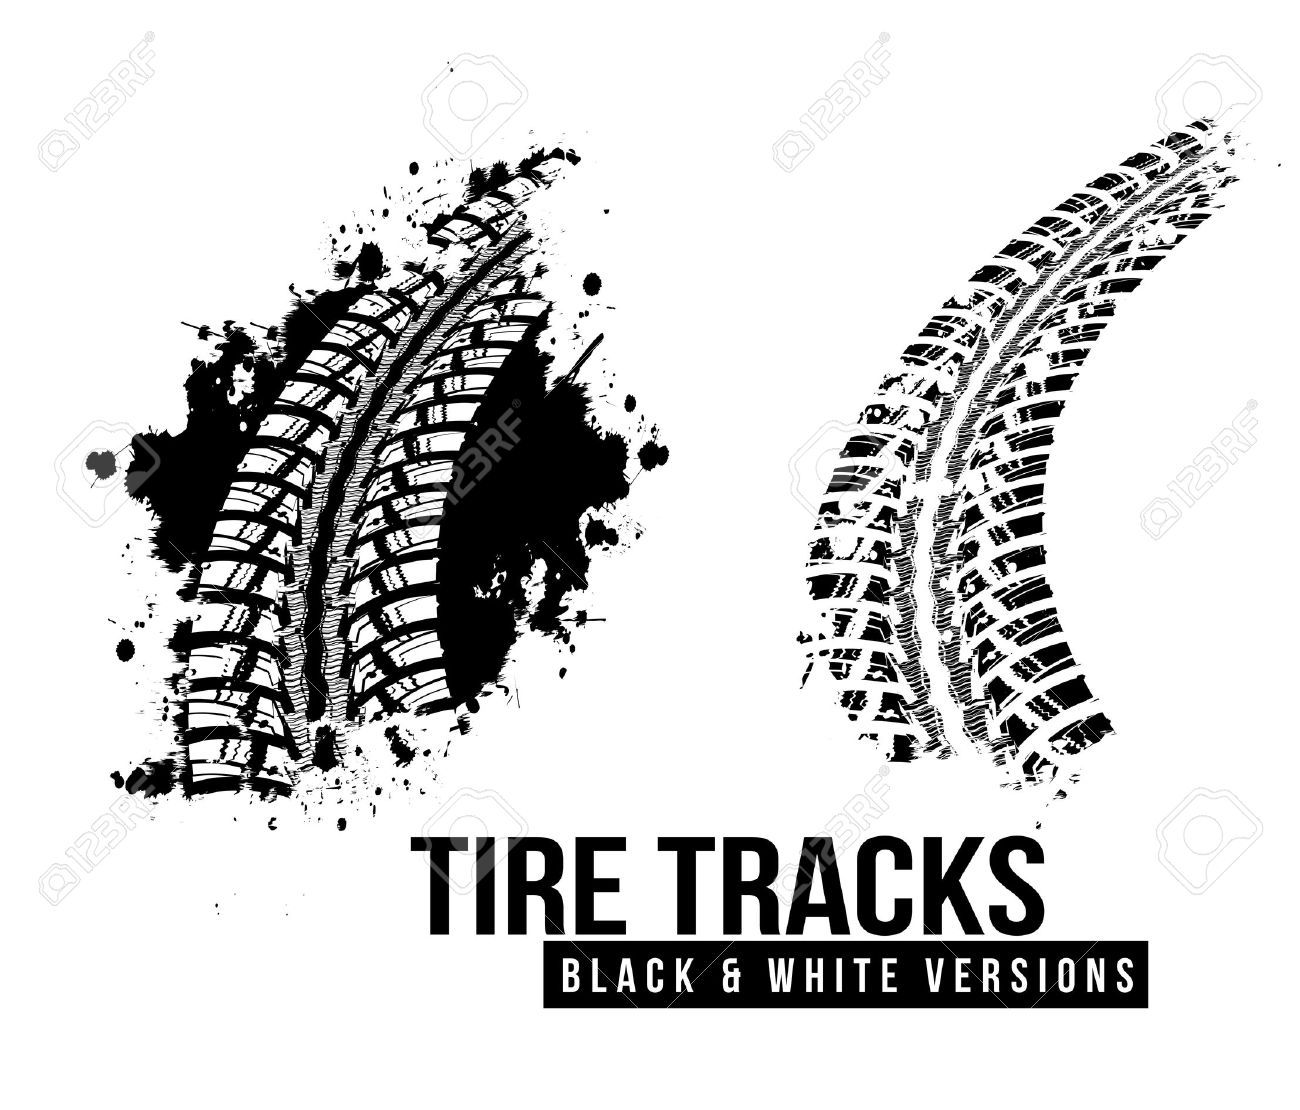 Tire track background - 32807244